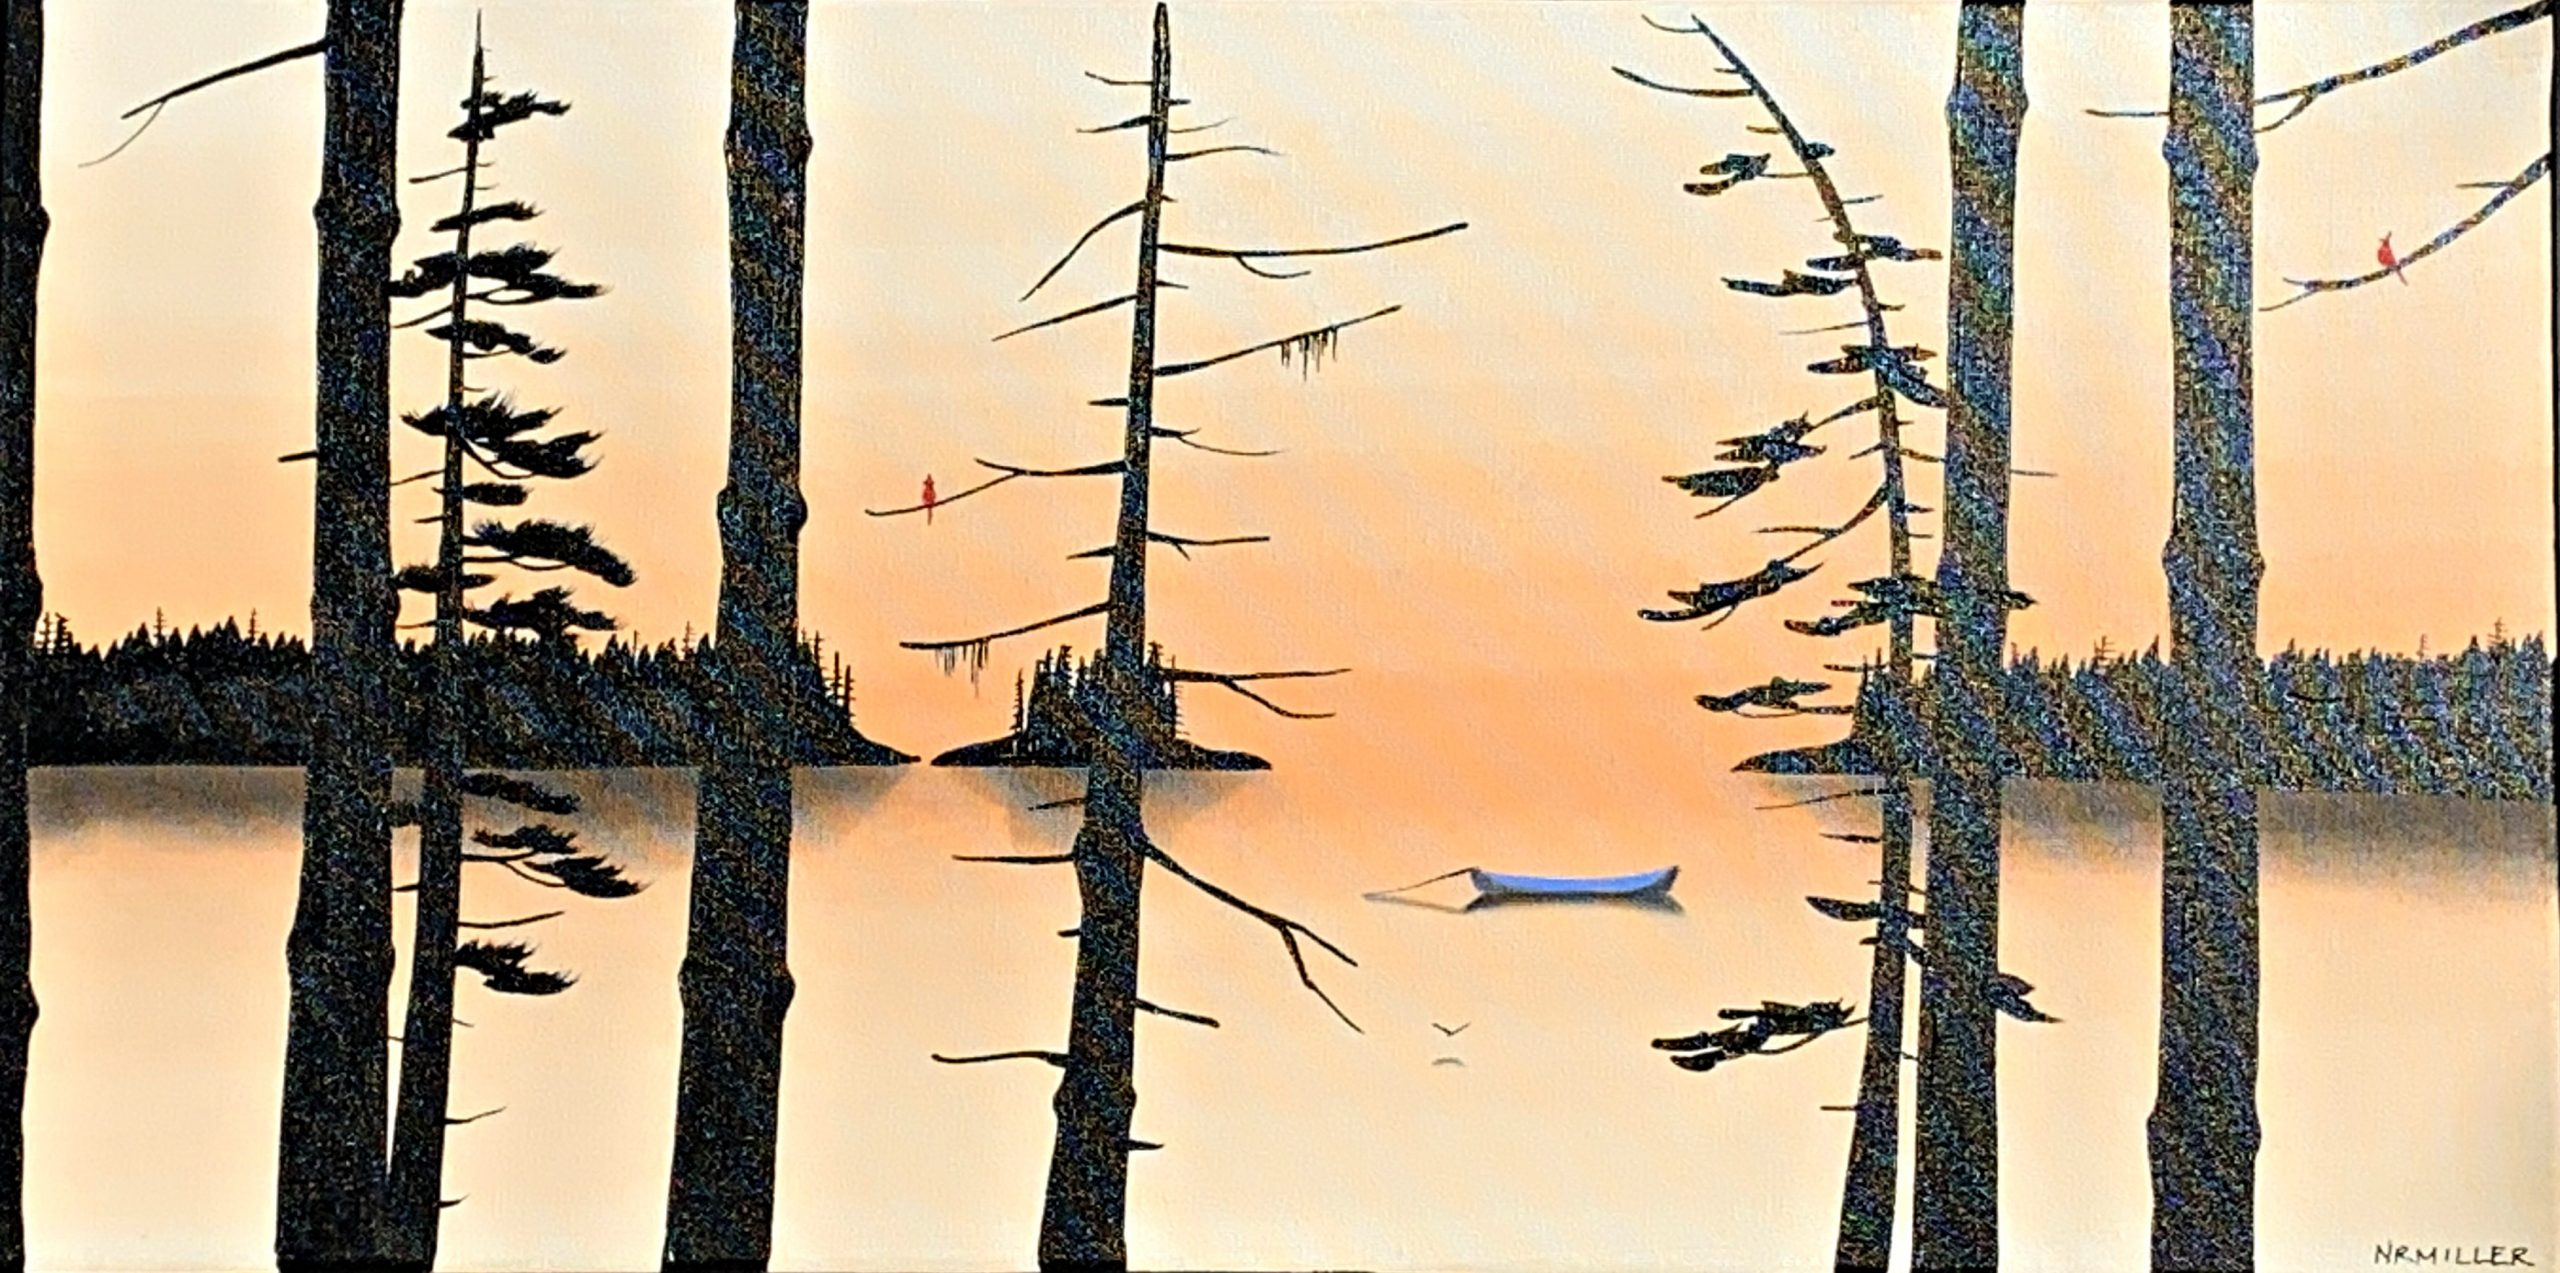 The Morning News, sunrise landscape painting by Natasha Miller | Effusion Art Gallery + Glass Studio, Invermere BC